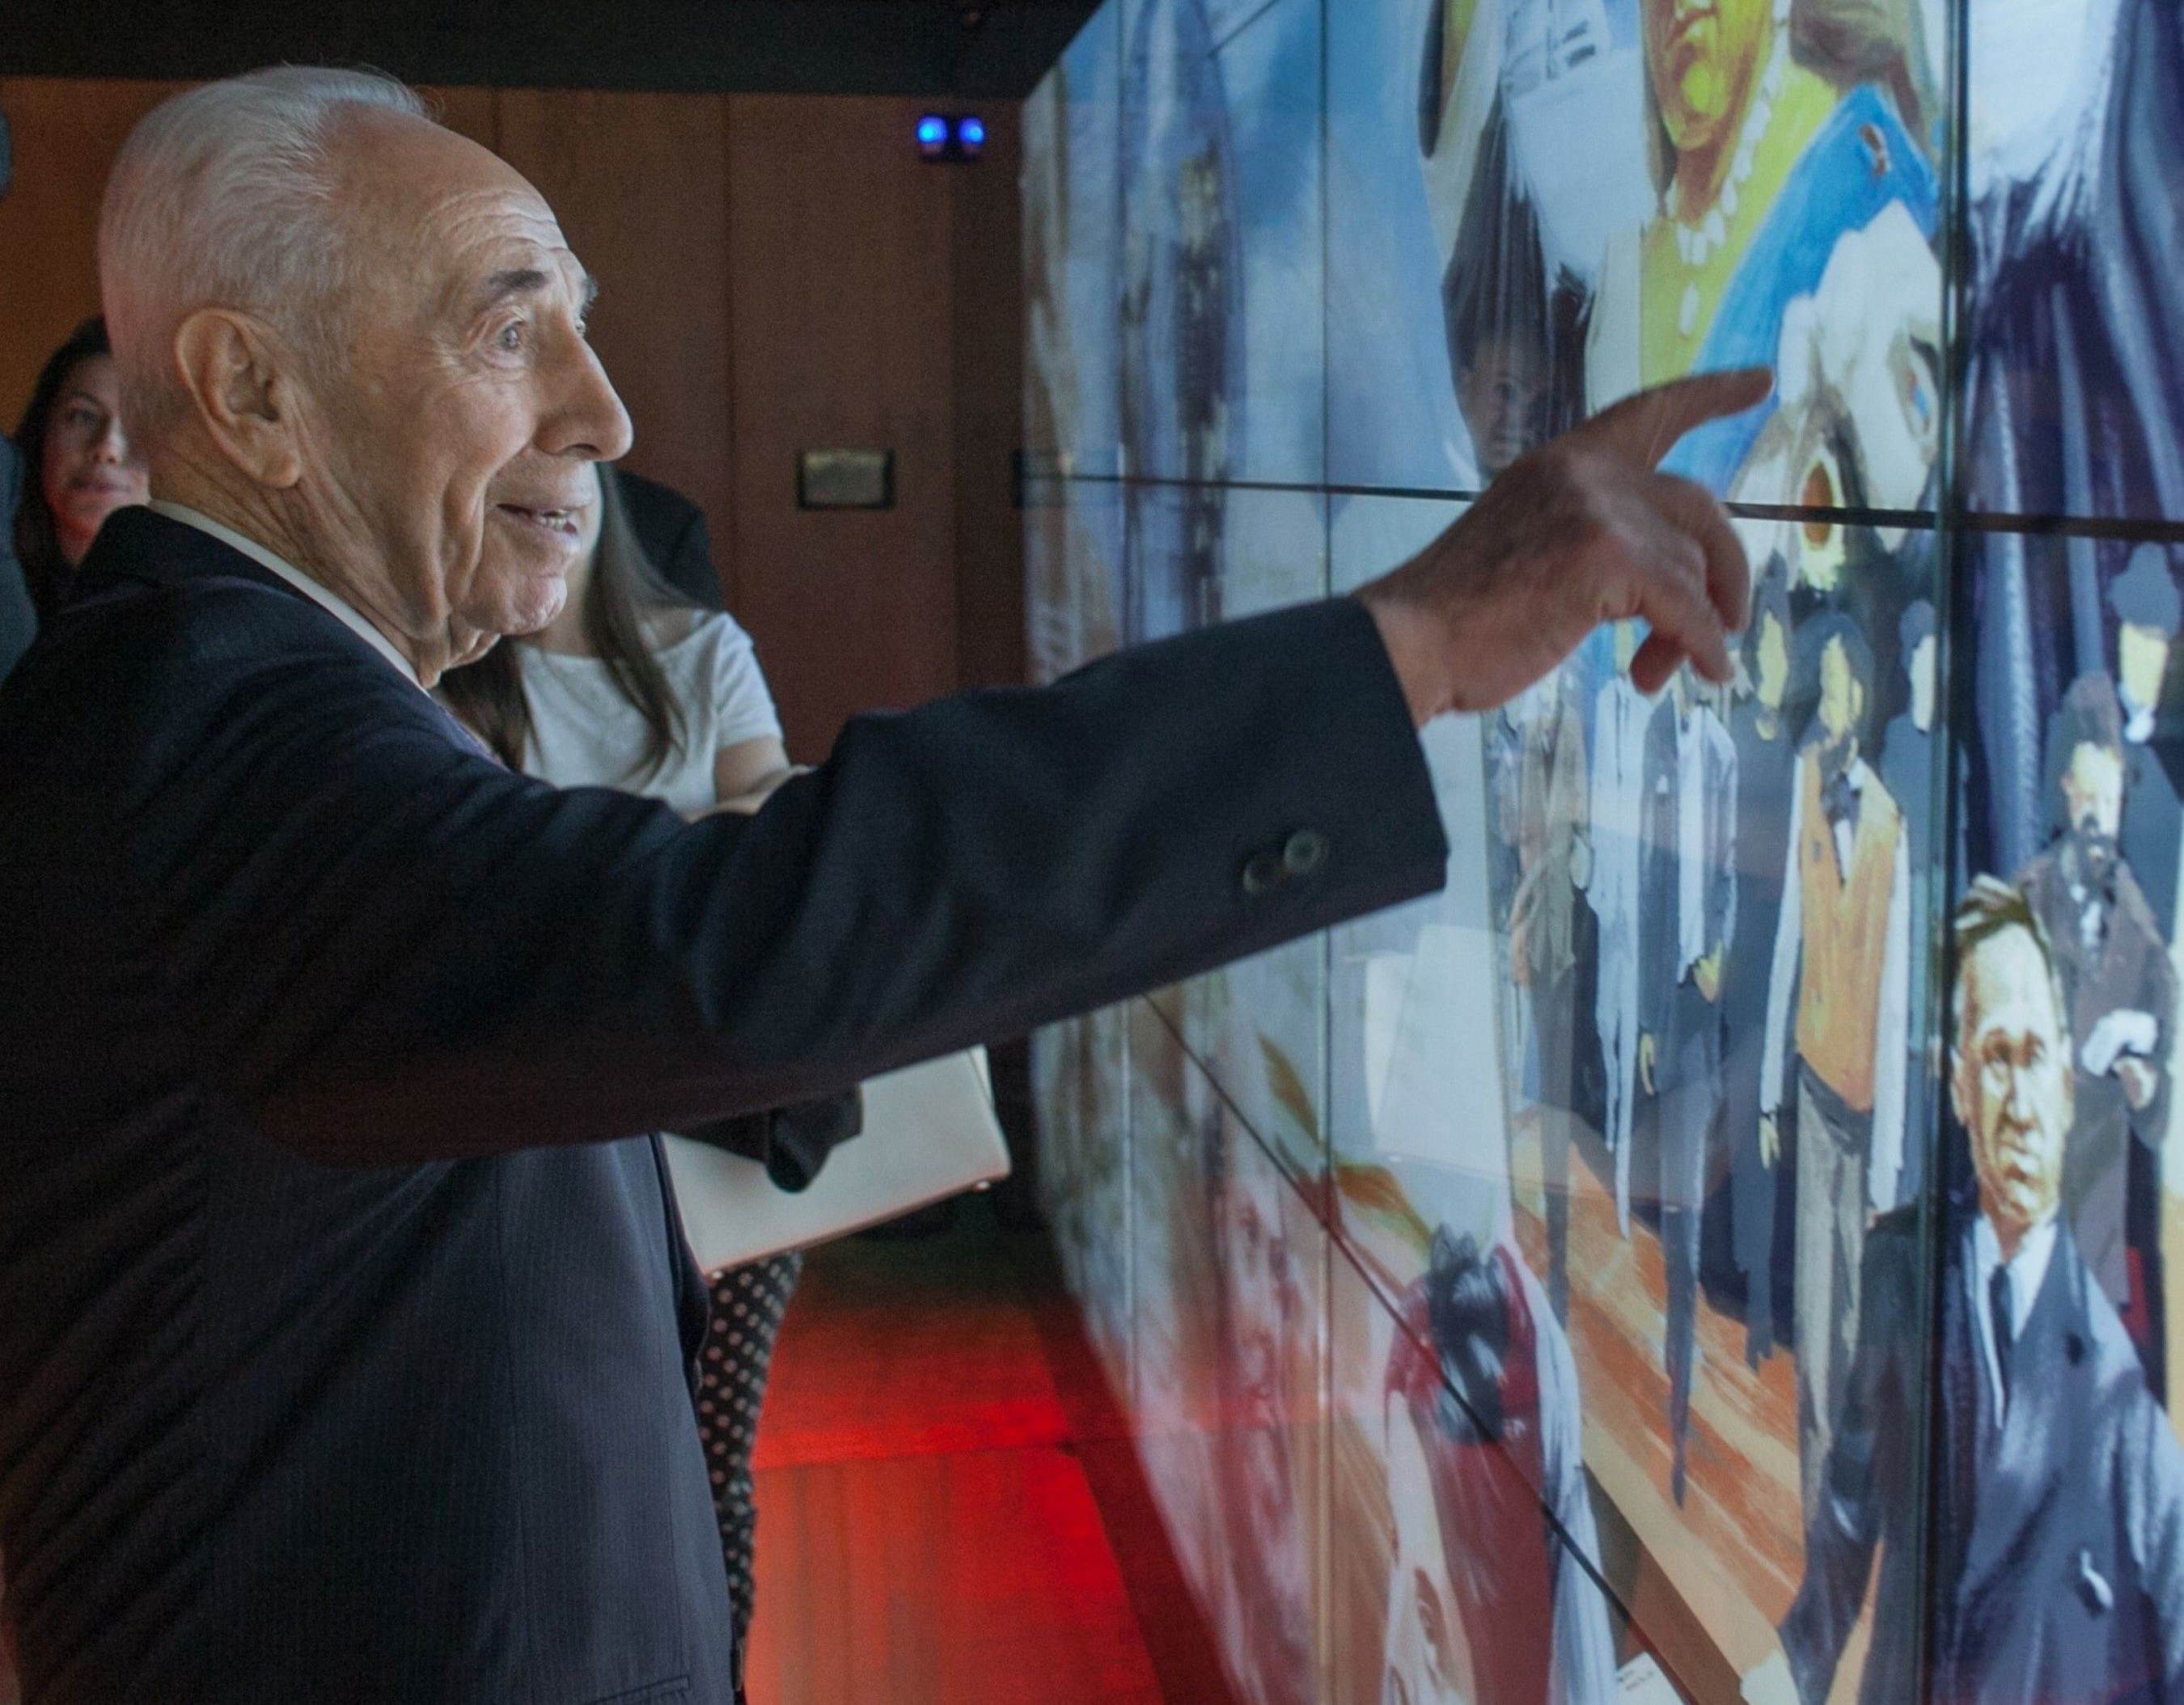 Former Israeli President Shimon Peres, International Chairman of the Friends of Zion (FOZ) Museum in Jerusalem, activating a historical figure on the largest interactive mural in Israel, located at the museum, honoring non-Jews who support Israel and the Zionist vision.